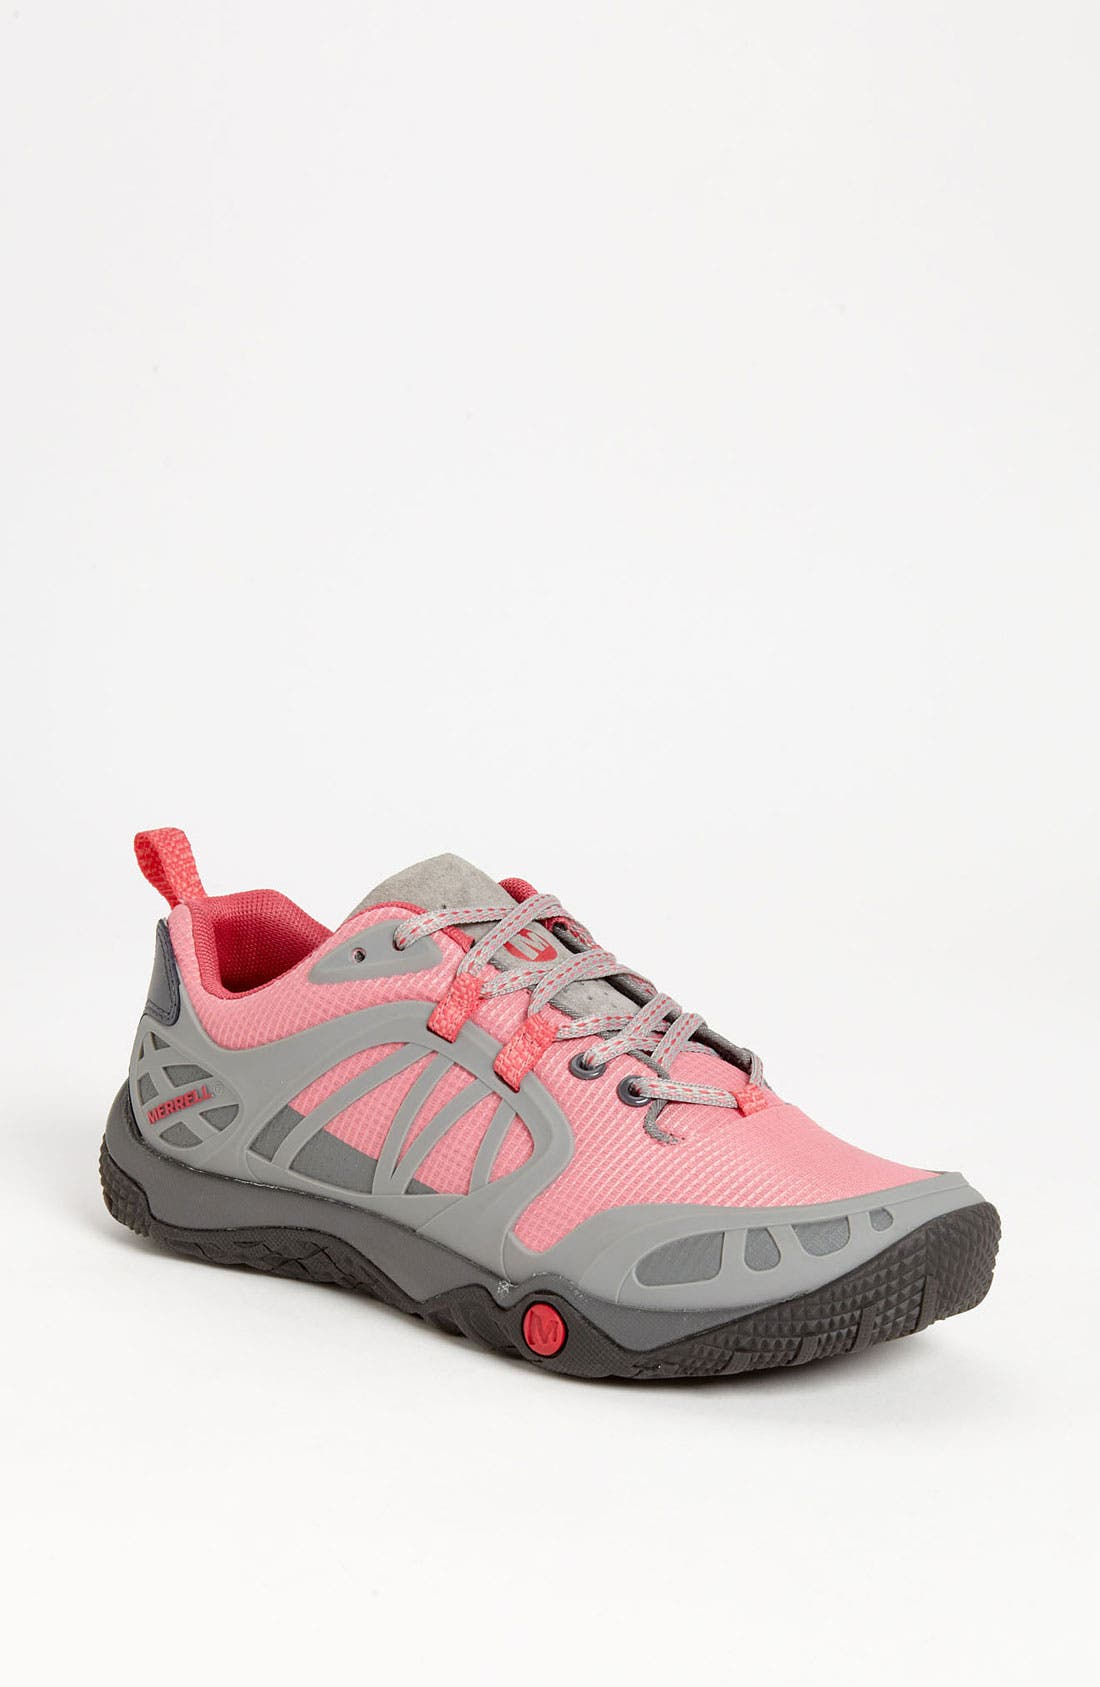 Main Image - Merrell 'Proterra Vim' Hiking Shoe (Women)